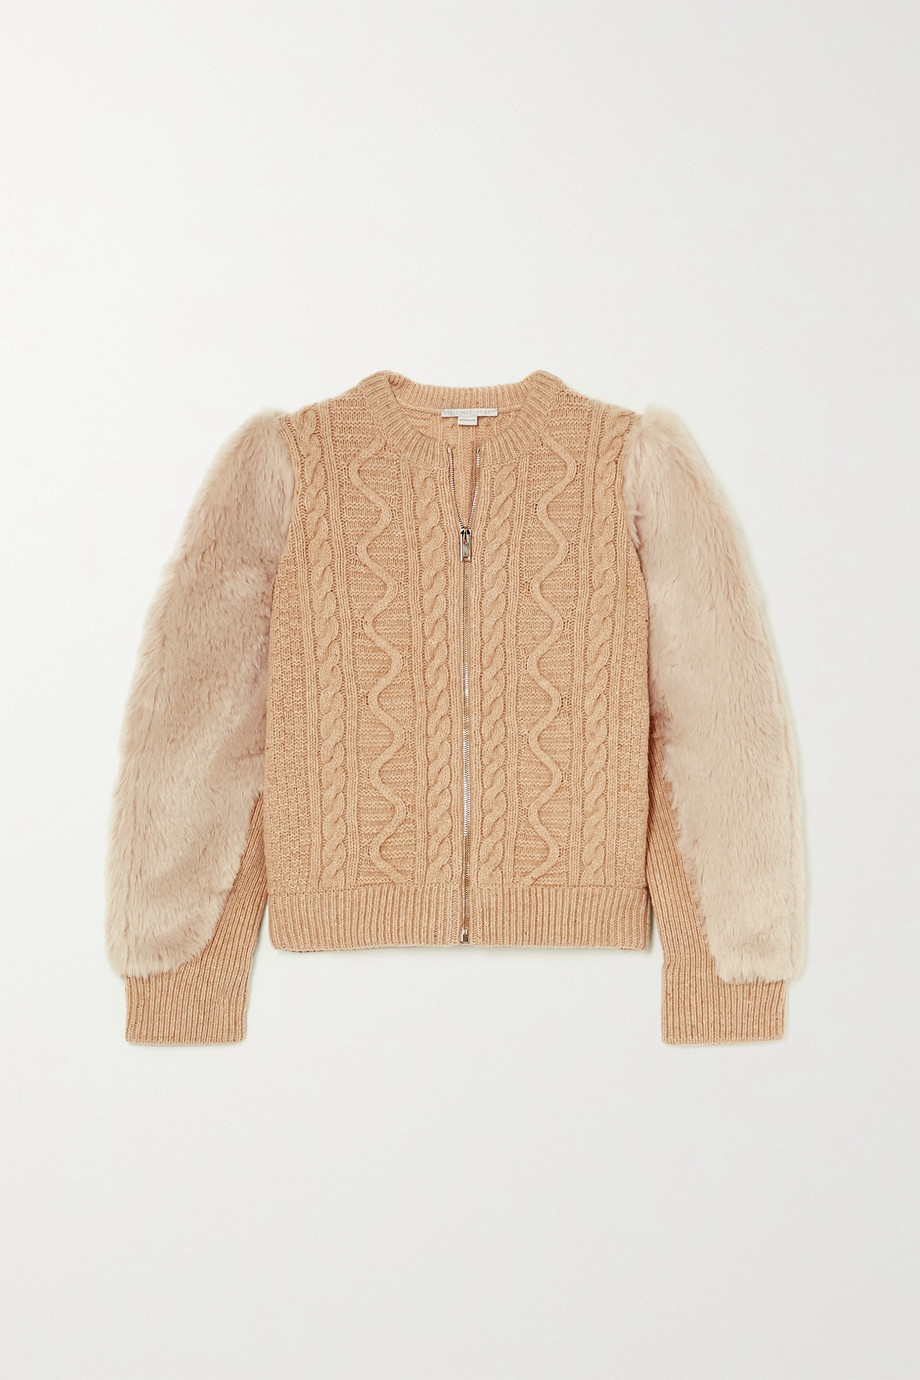 Stella McCartney Faux fur-trimmed cable-knit wool jacket